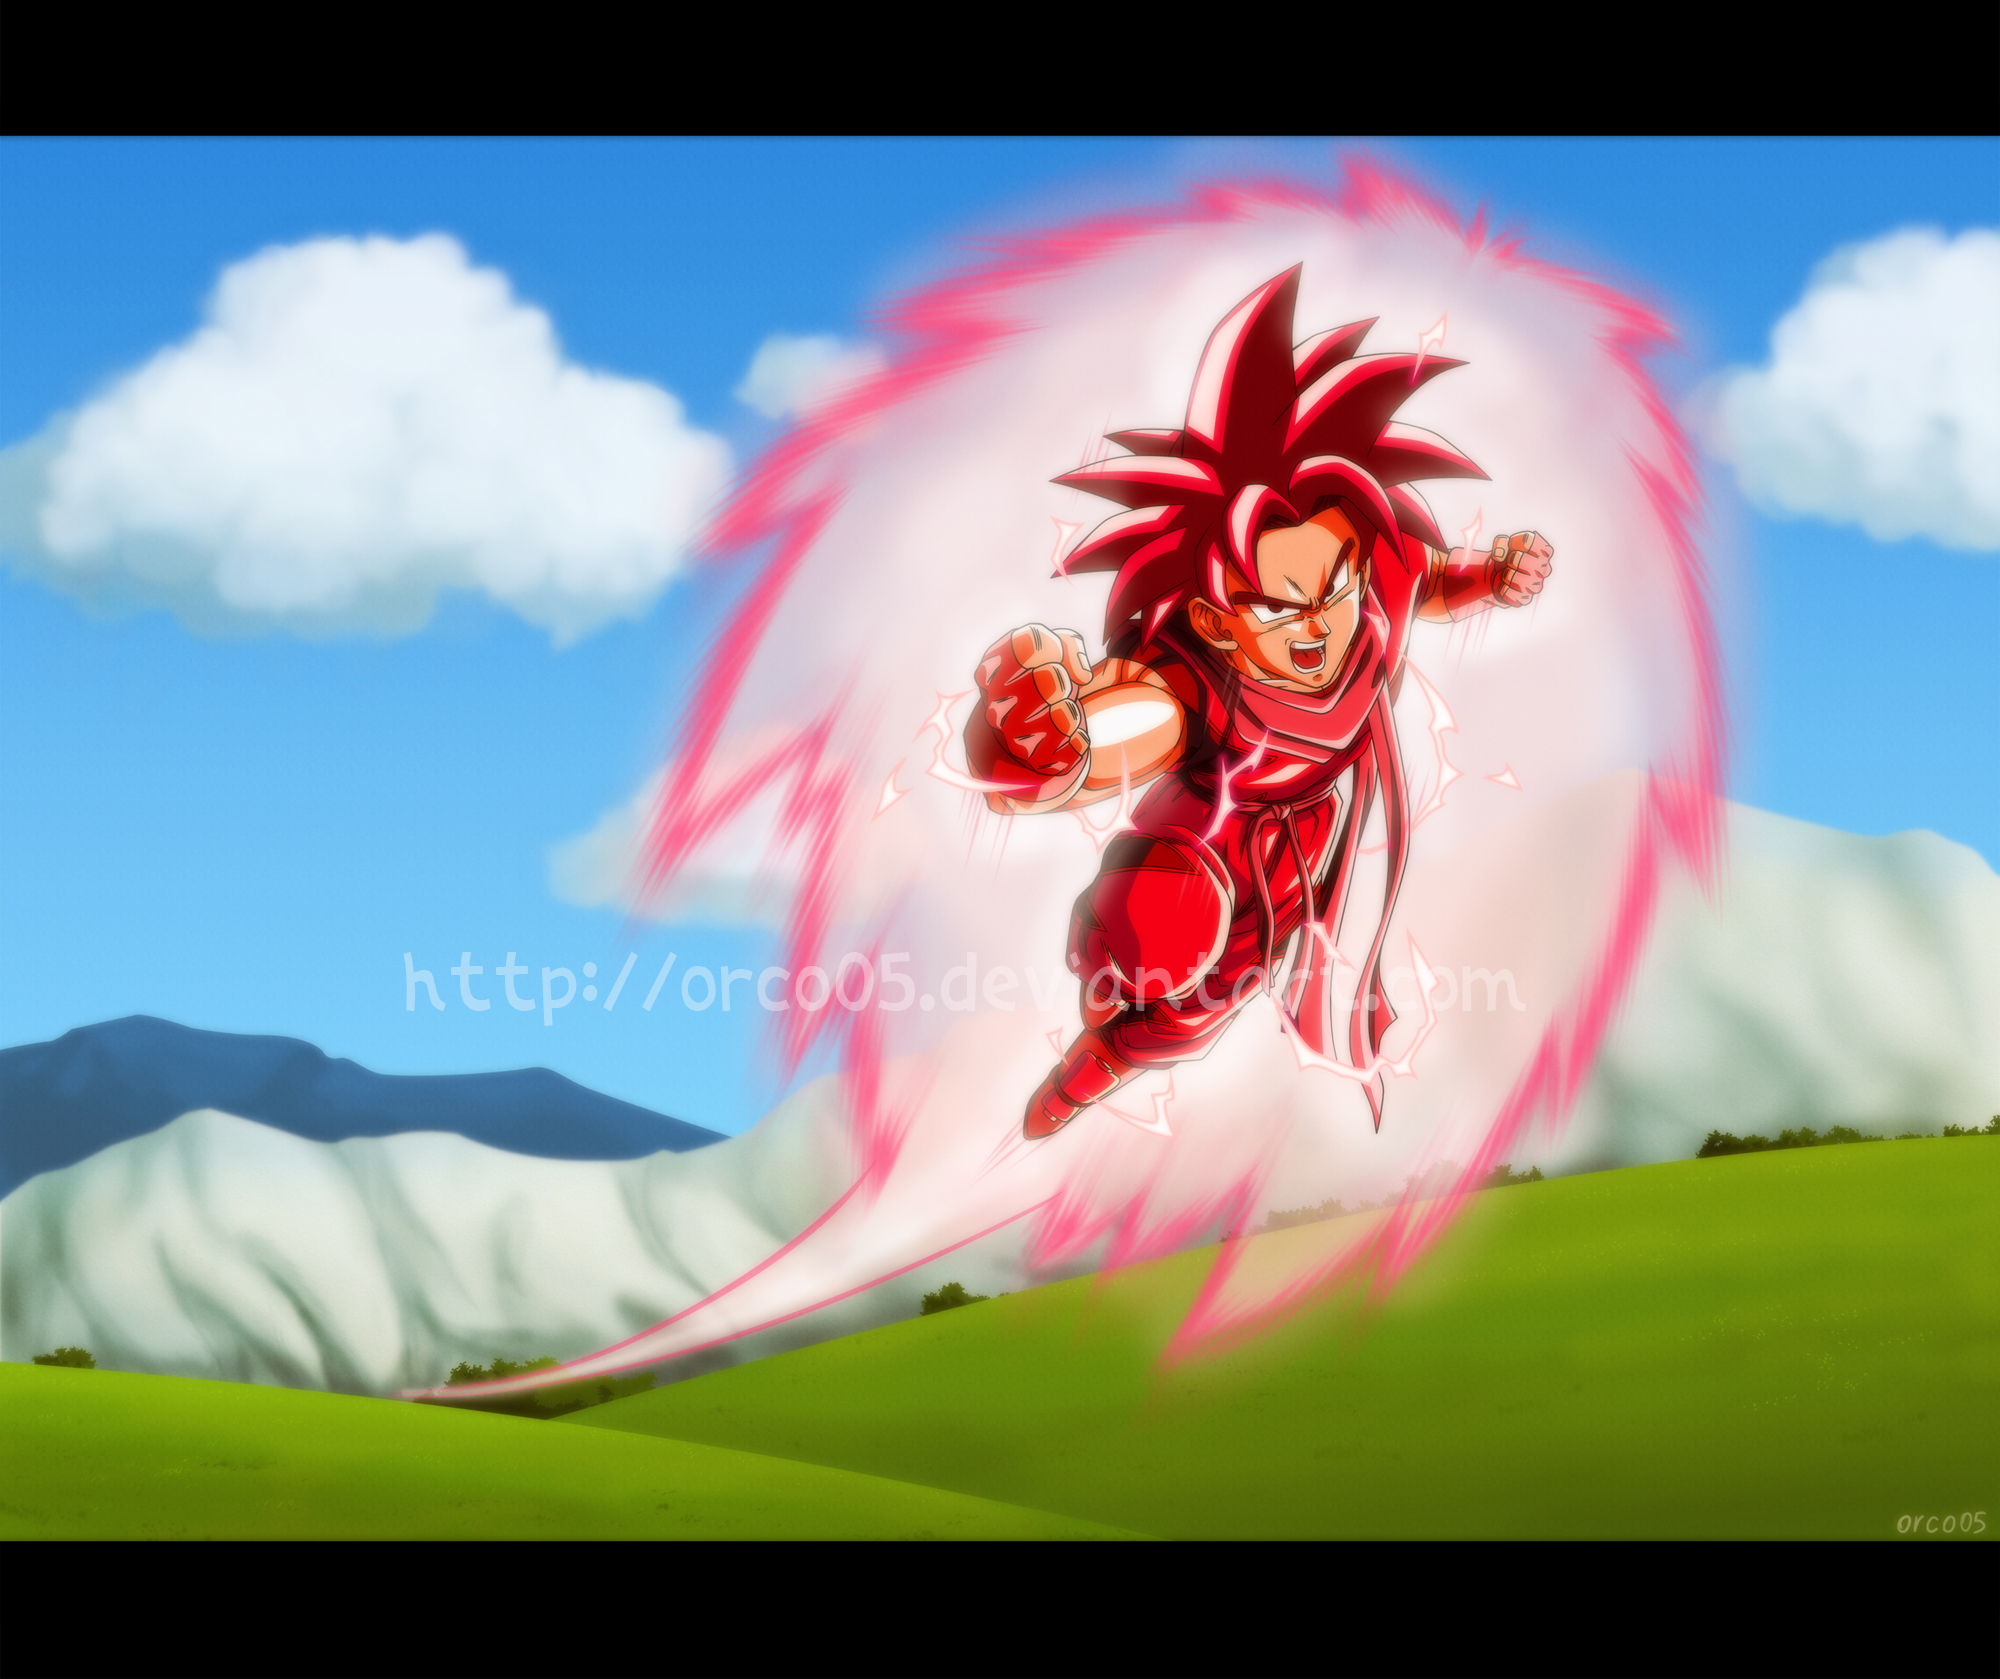 David Kaioken by orco05